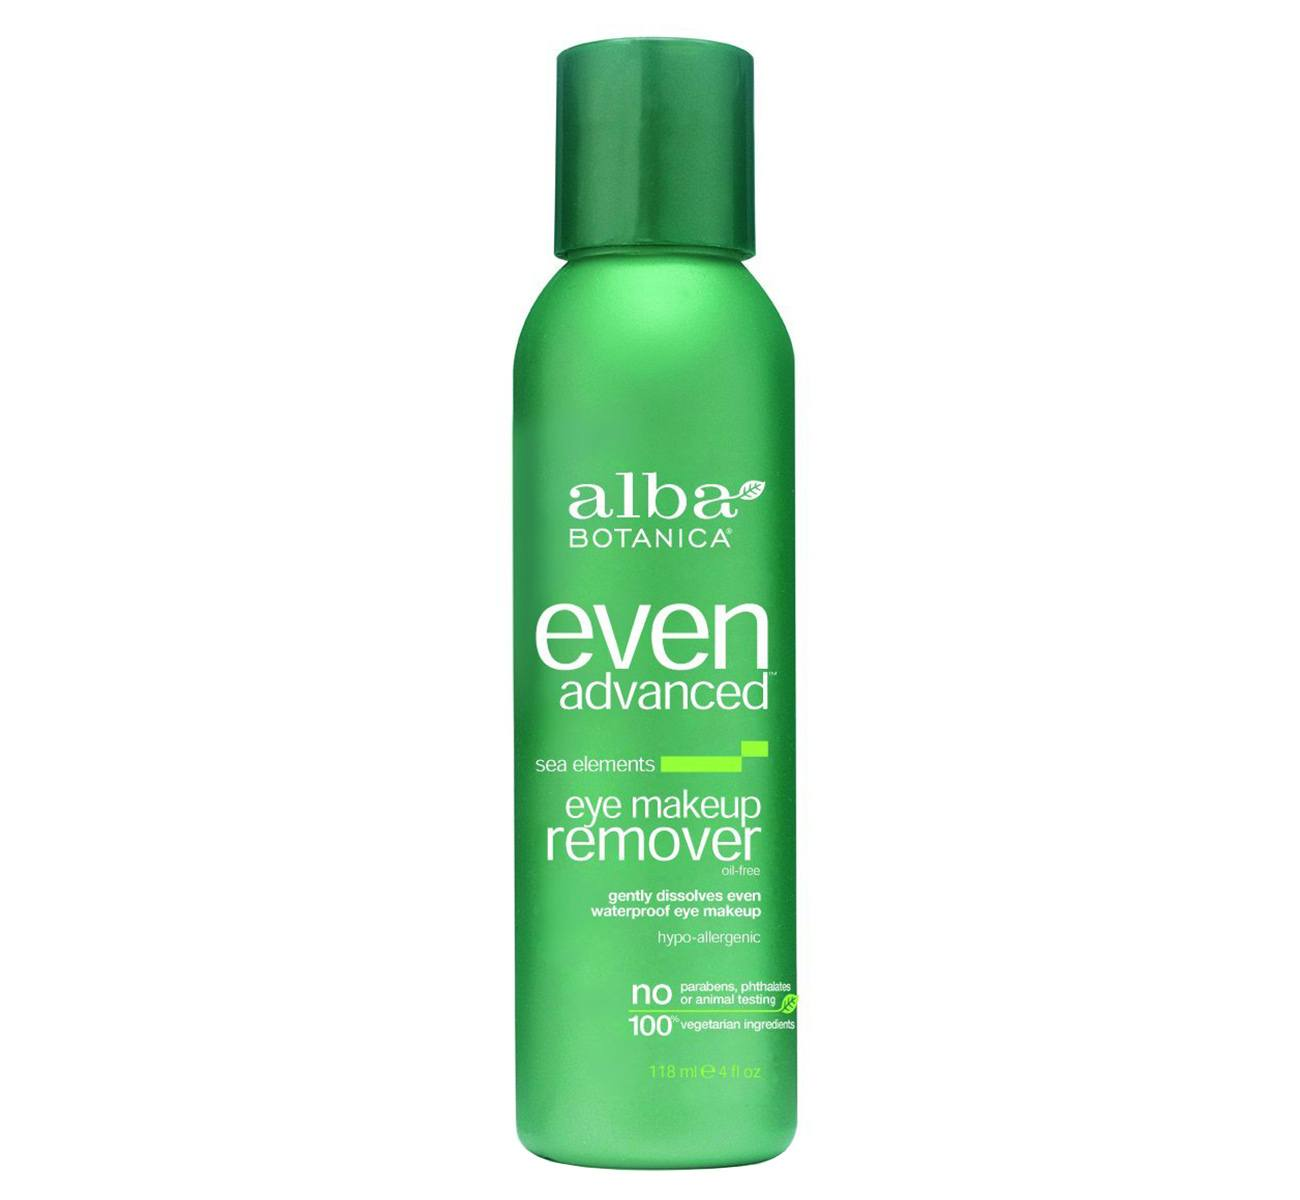 Alba Botanica Even Advanced Vegan Eye Makeup Remover